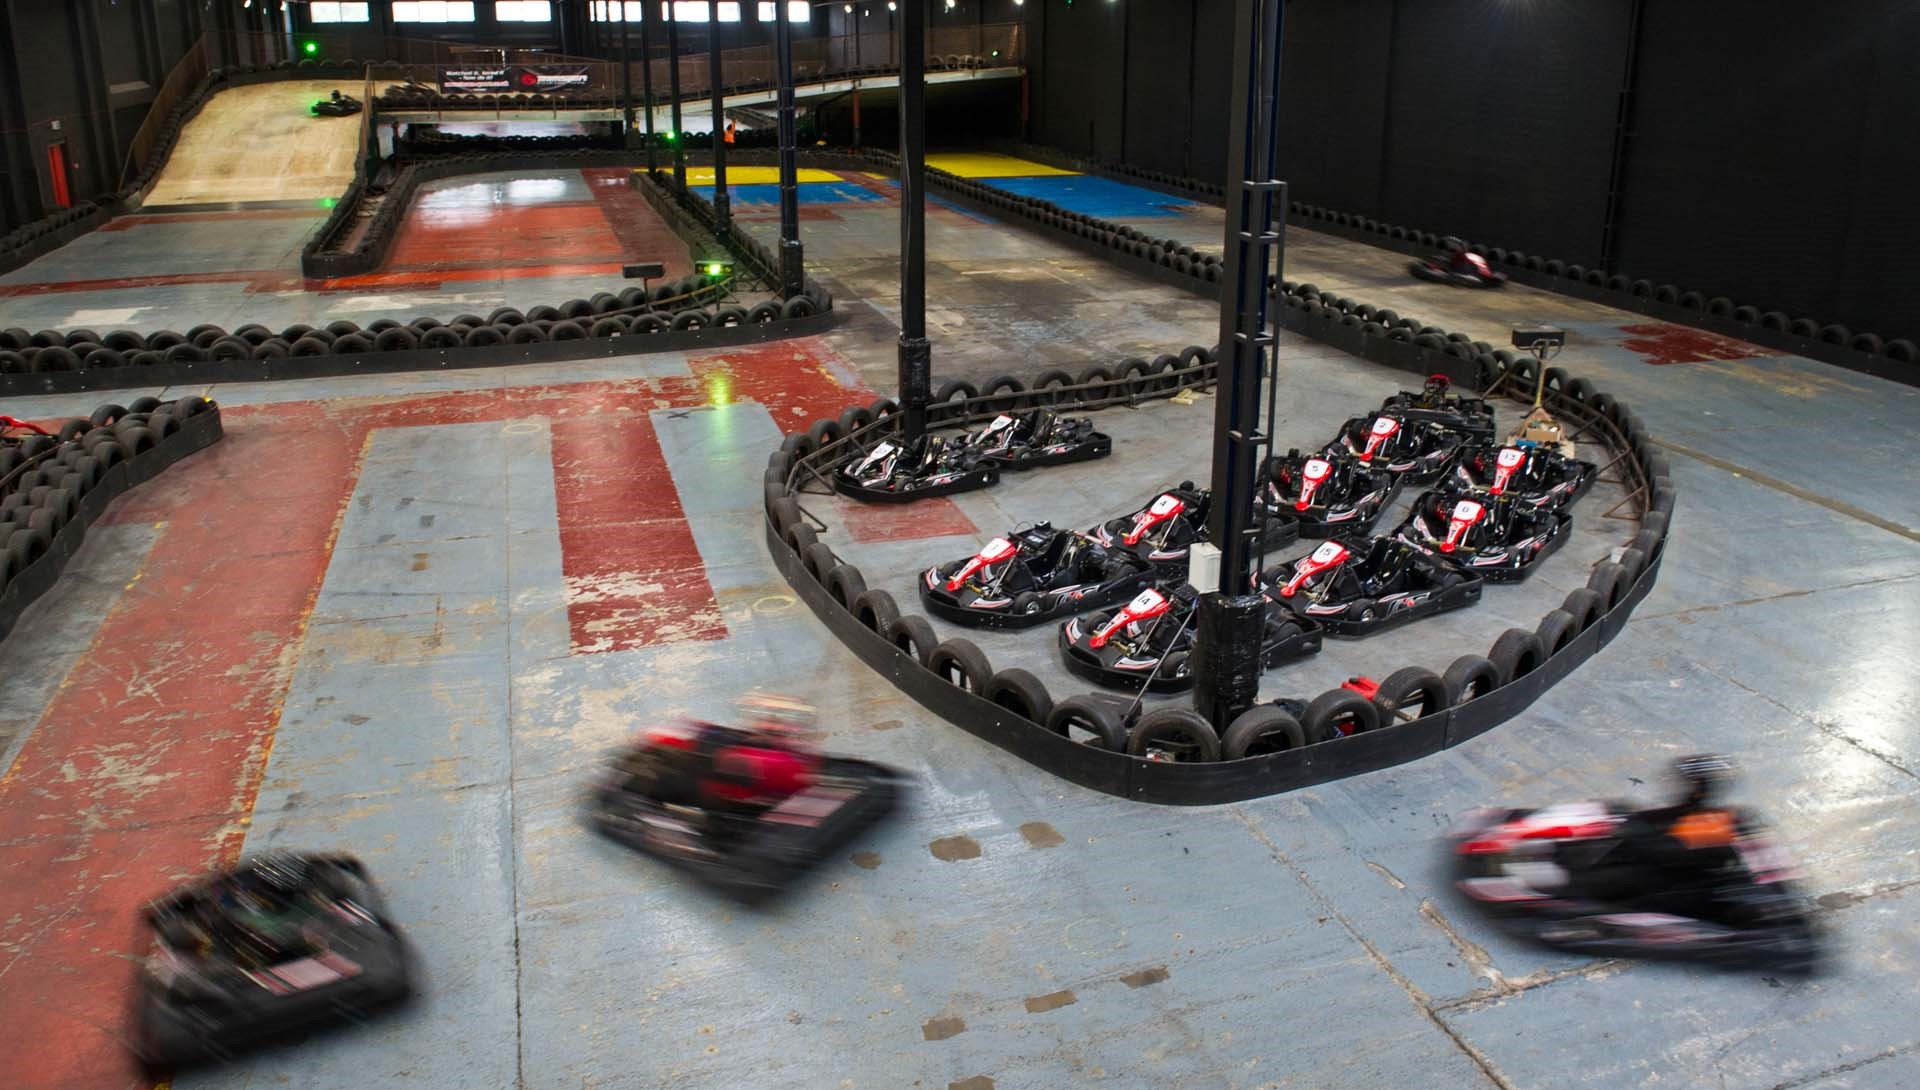 TeamSport_Gallery_Go_karting_Brighton_1920x1090-min_2.jpg